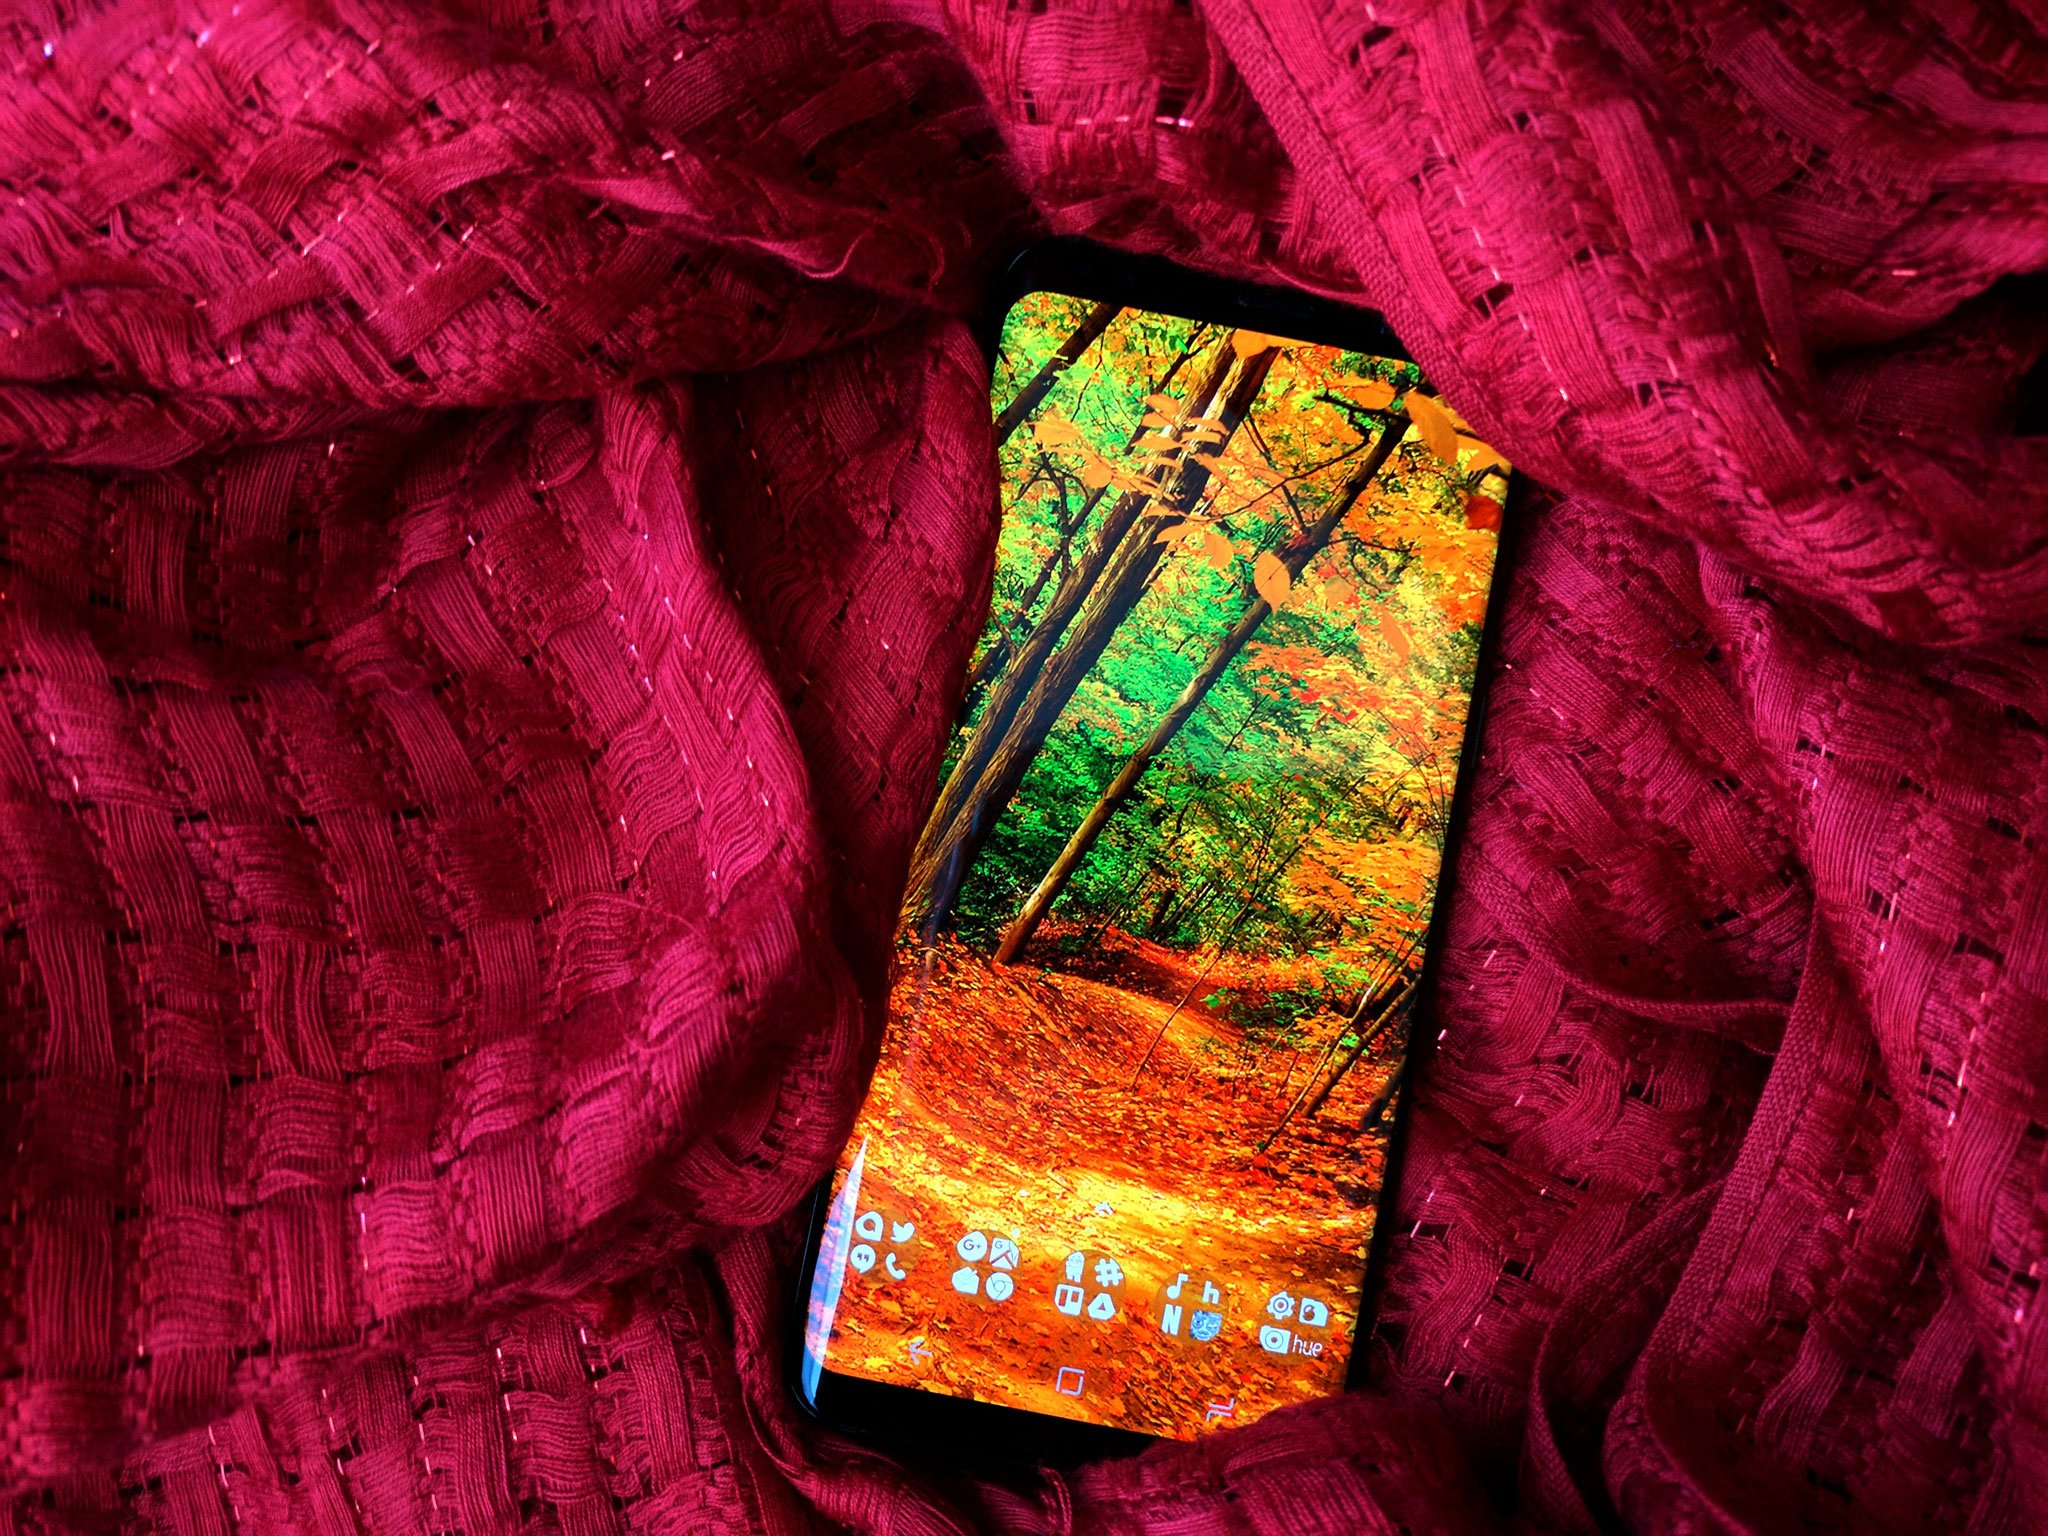 Fall Android Wallpaper Fall Into Autumn With A New Leafy Wallpaper Android Central